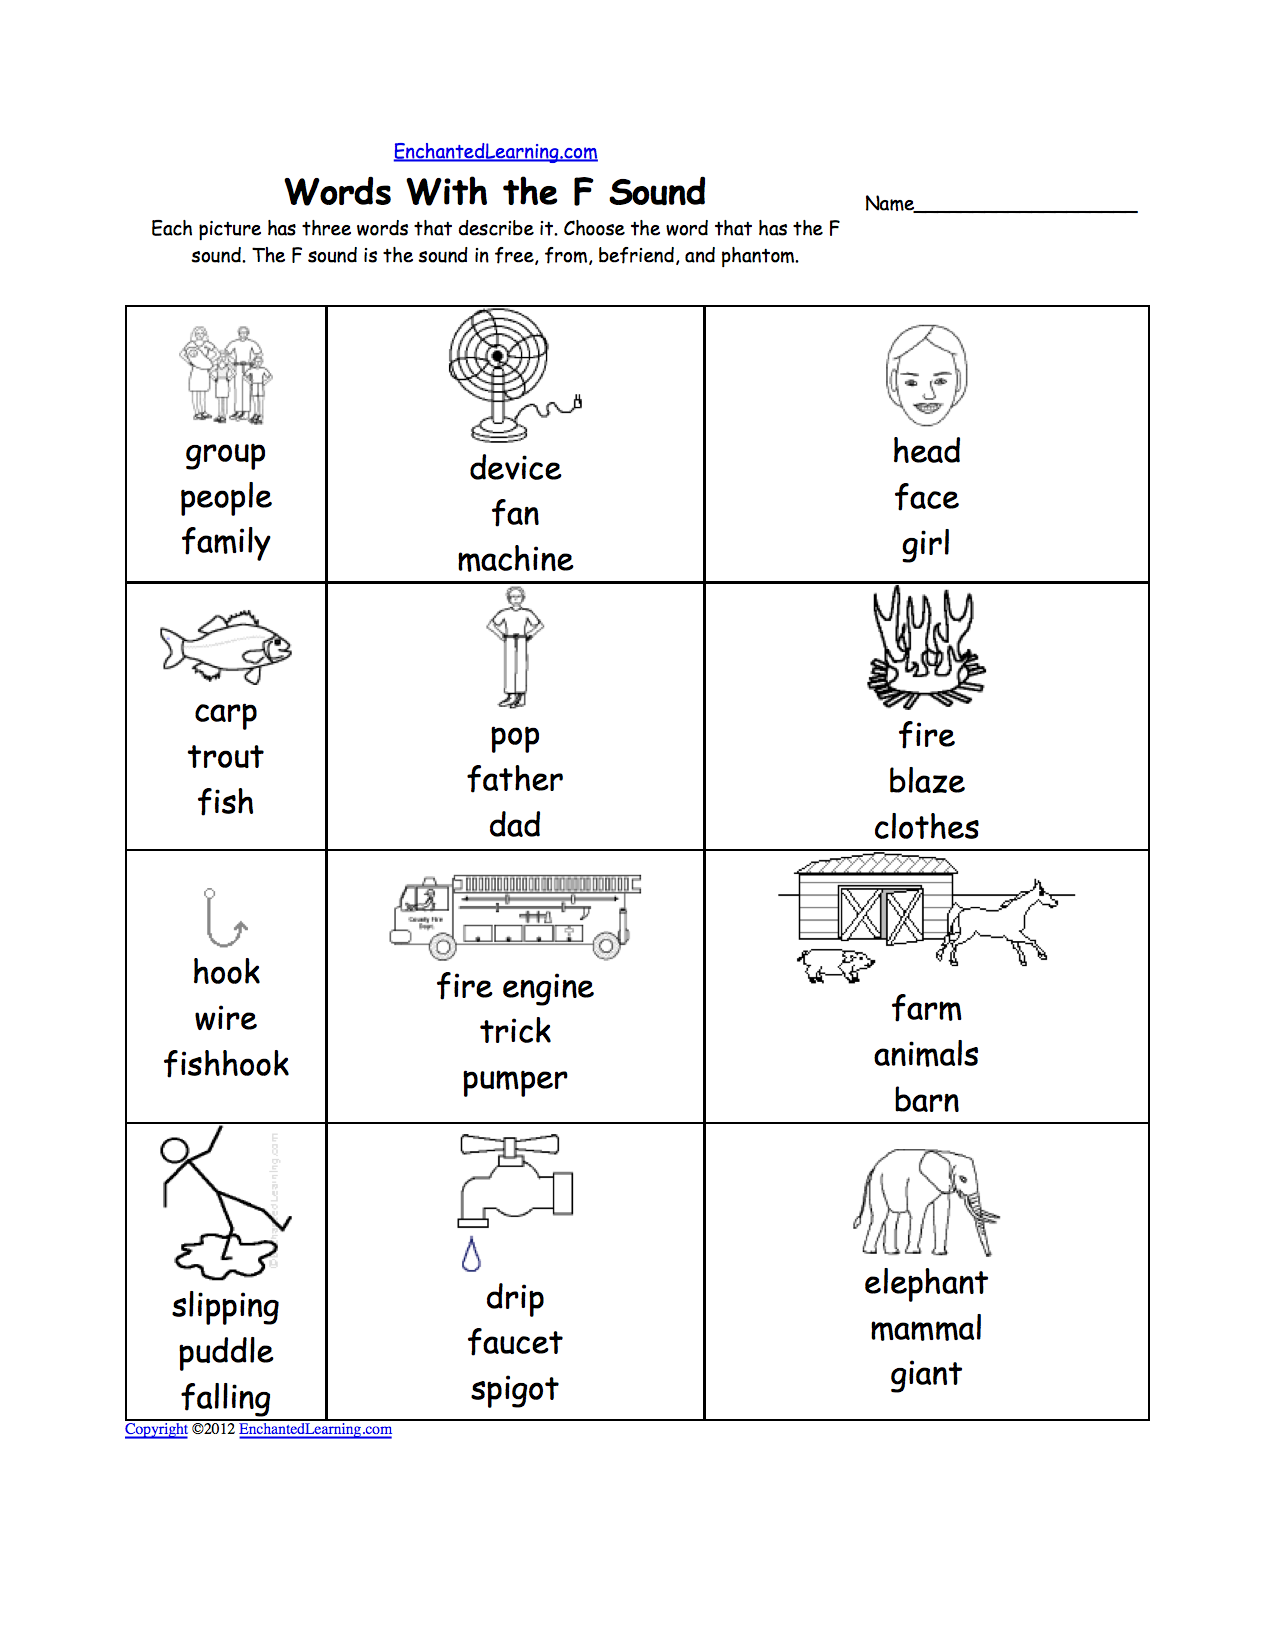 Worksheet Letter Sounds Worksheets For Kindergarten letter f alphabet activities at enchantedlearning com